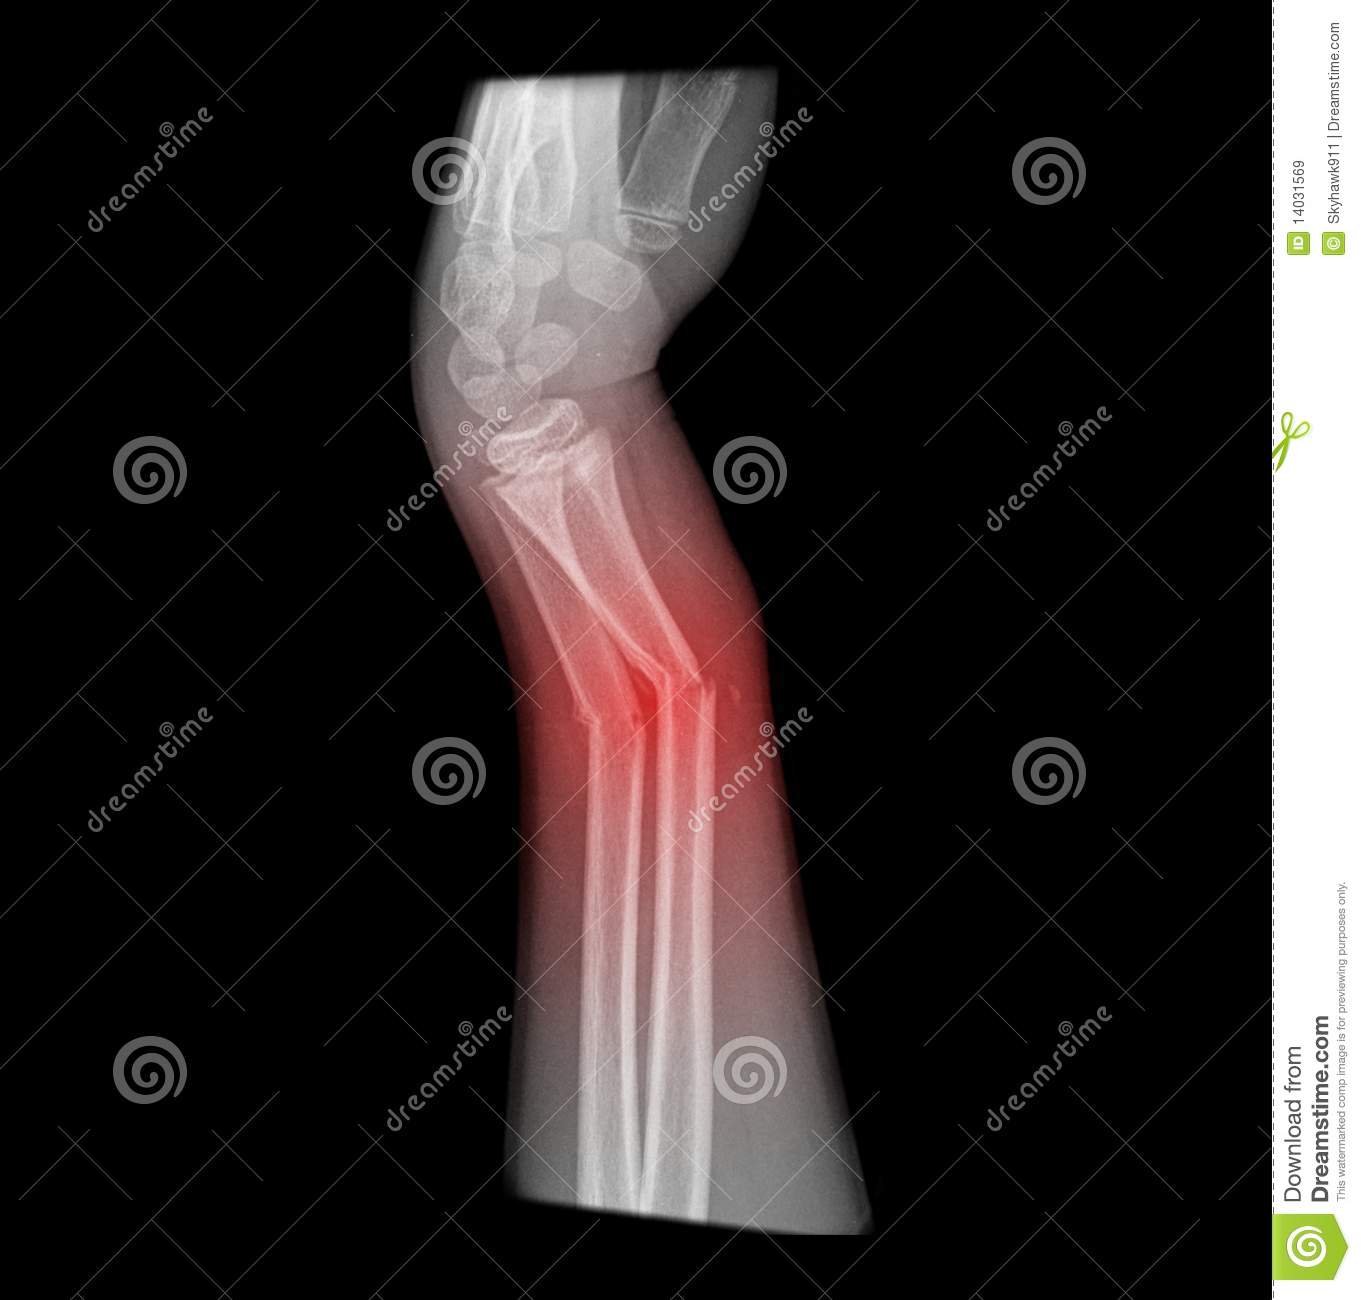 Broken arm, complete distal fracture of radius and ulna on x-ray.